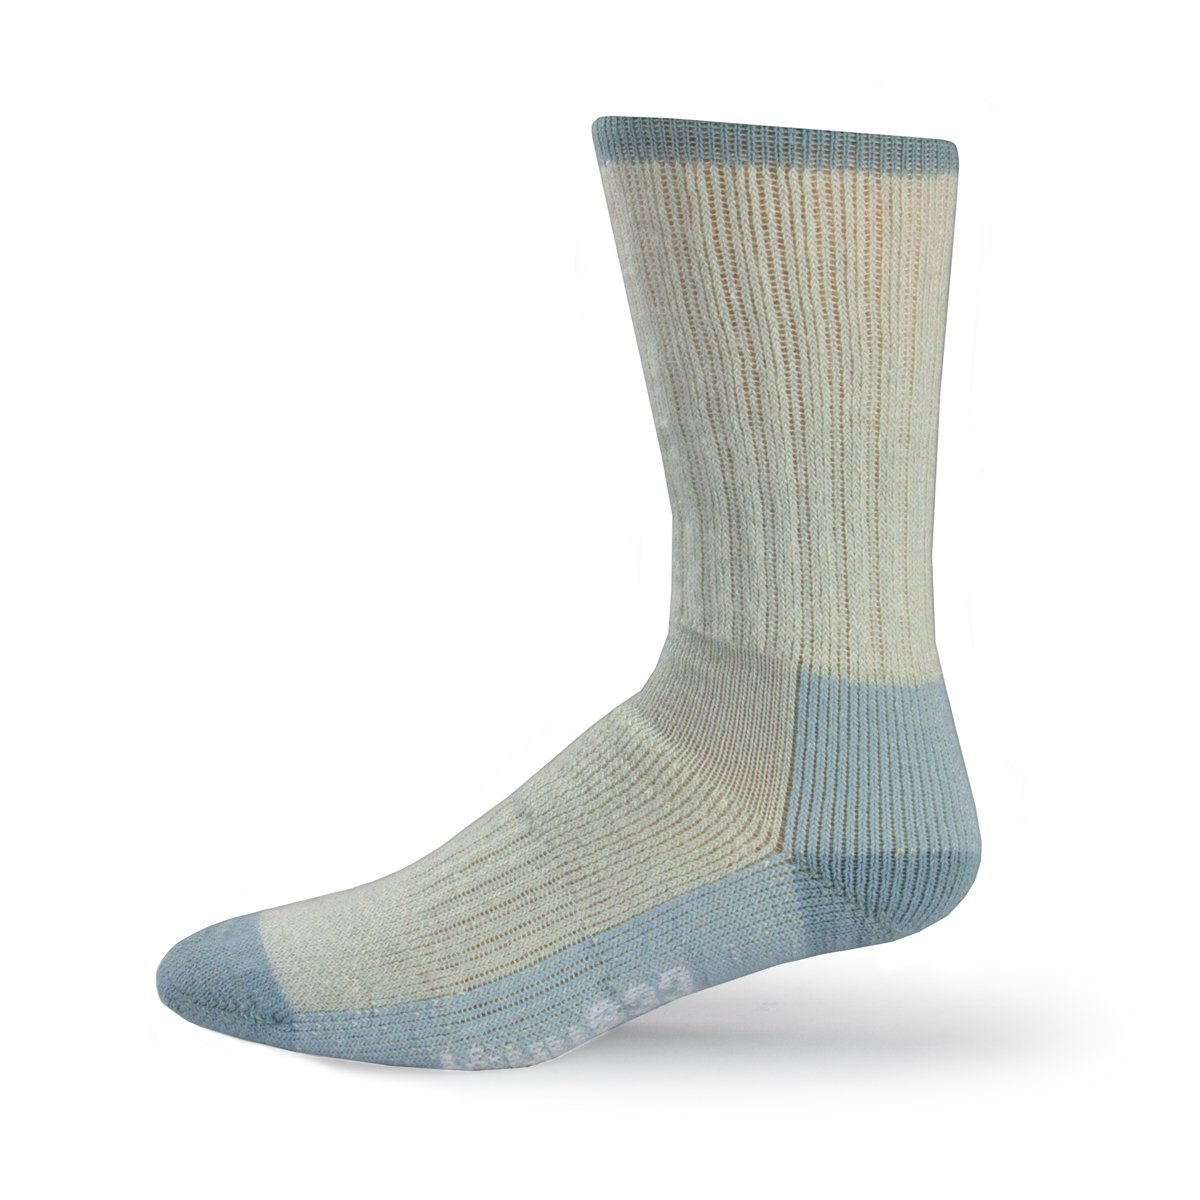 Minus33 Merino Wool 903 Day Hiker Sock Powder Blue Large by Minus33 Merino Wool